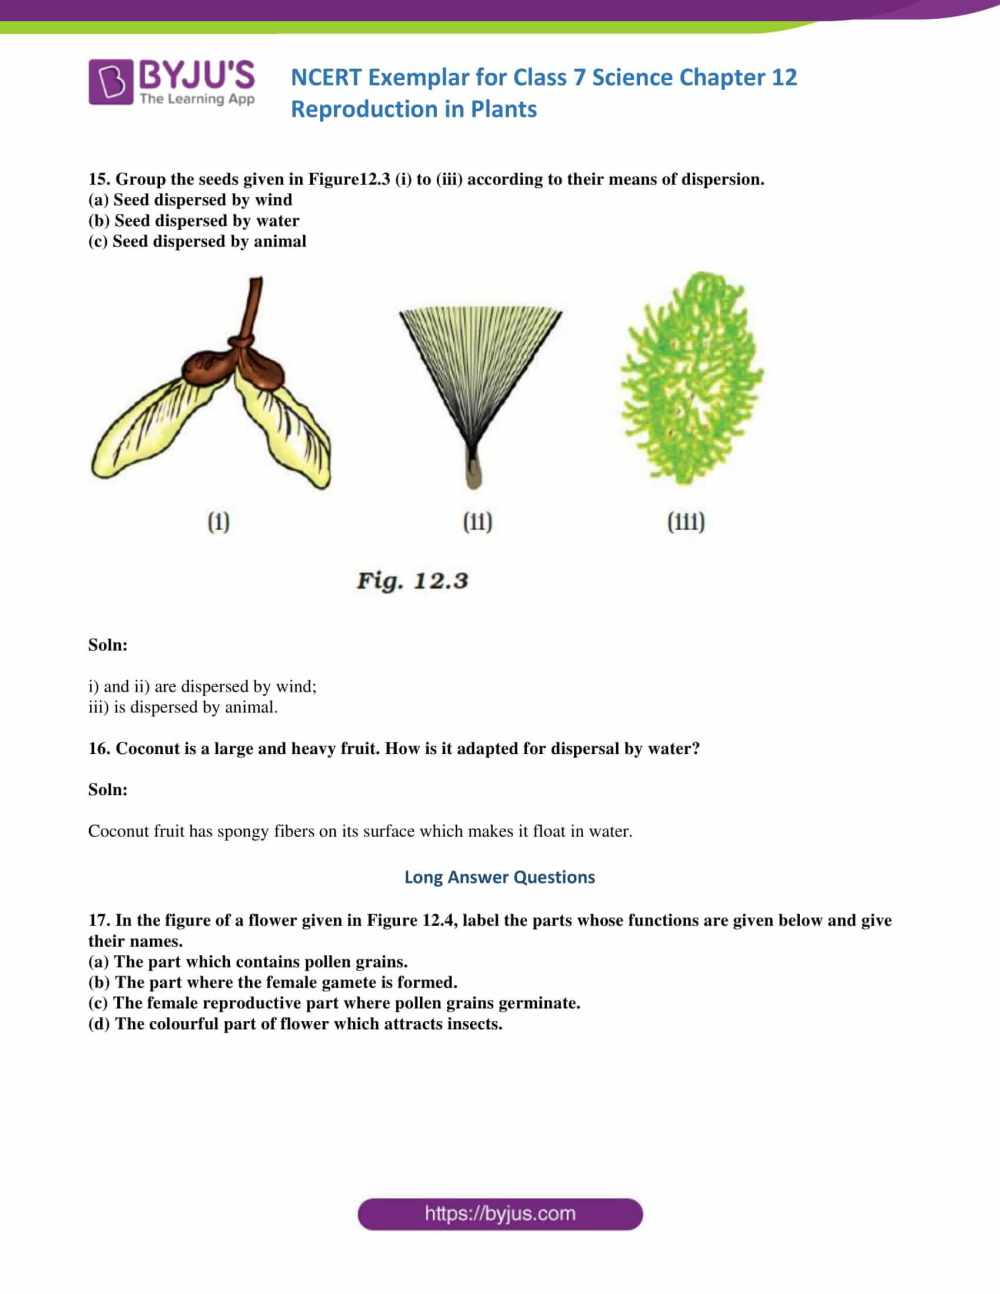 medium resolution of NCERT Exemplar solutions for Class 7 Science Chapter 12 - Reproduction in  Plants